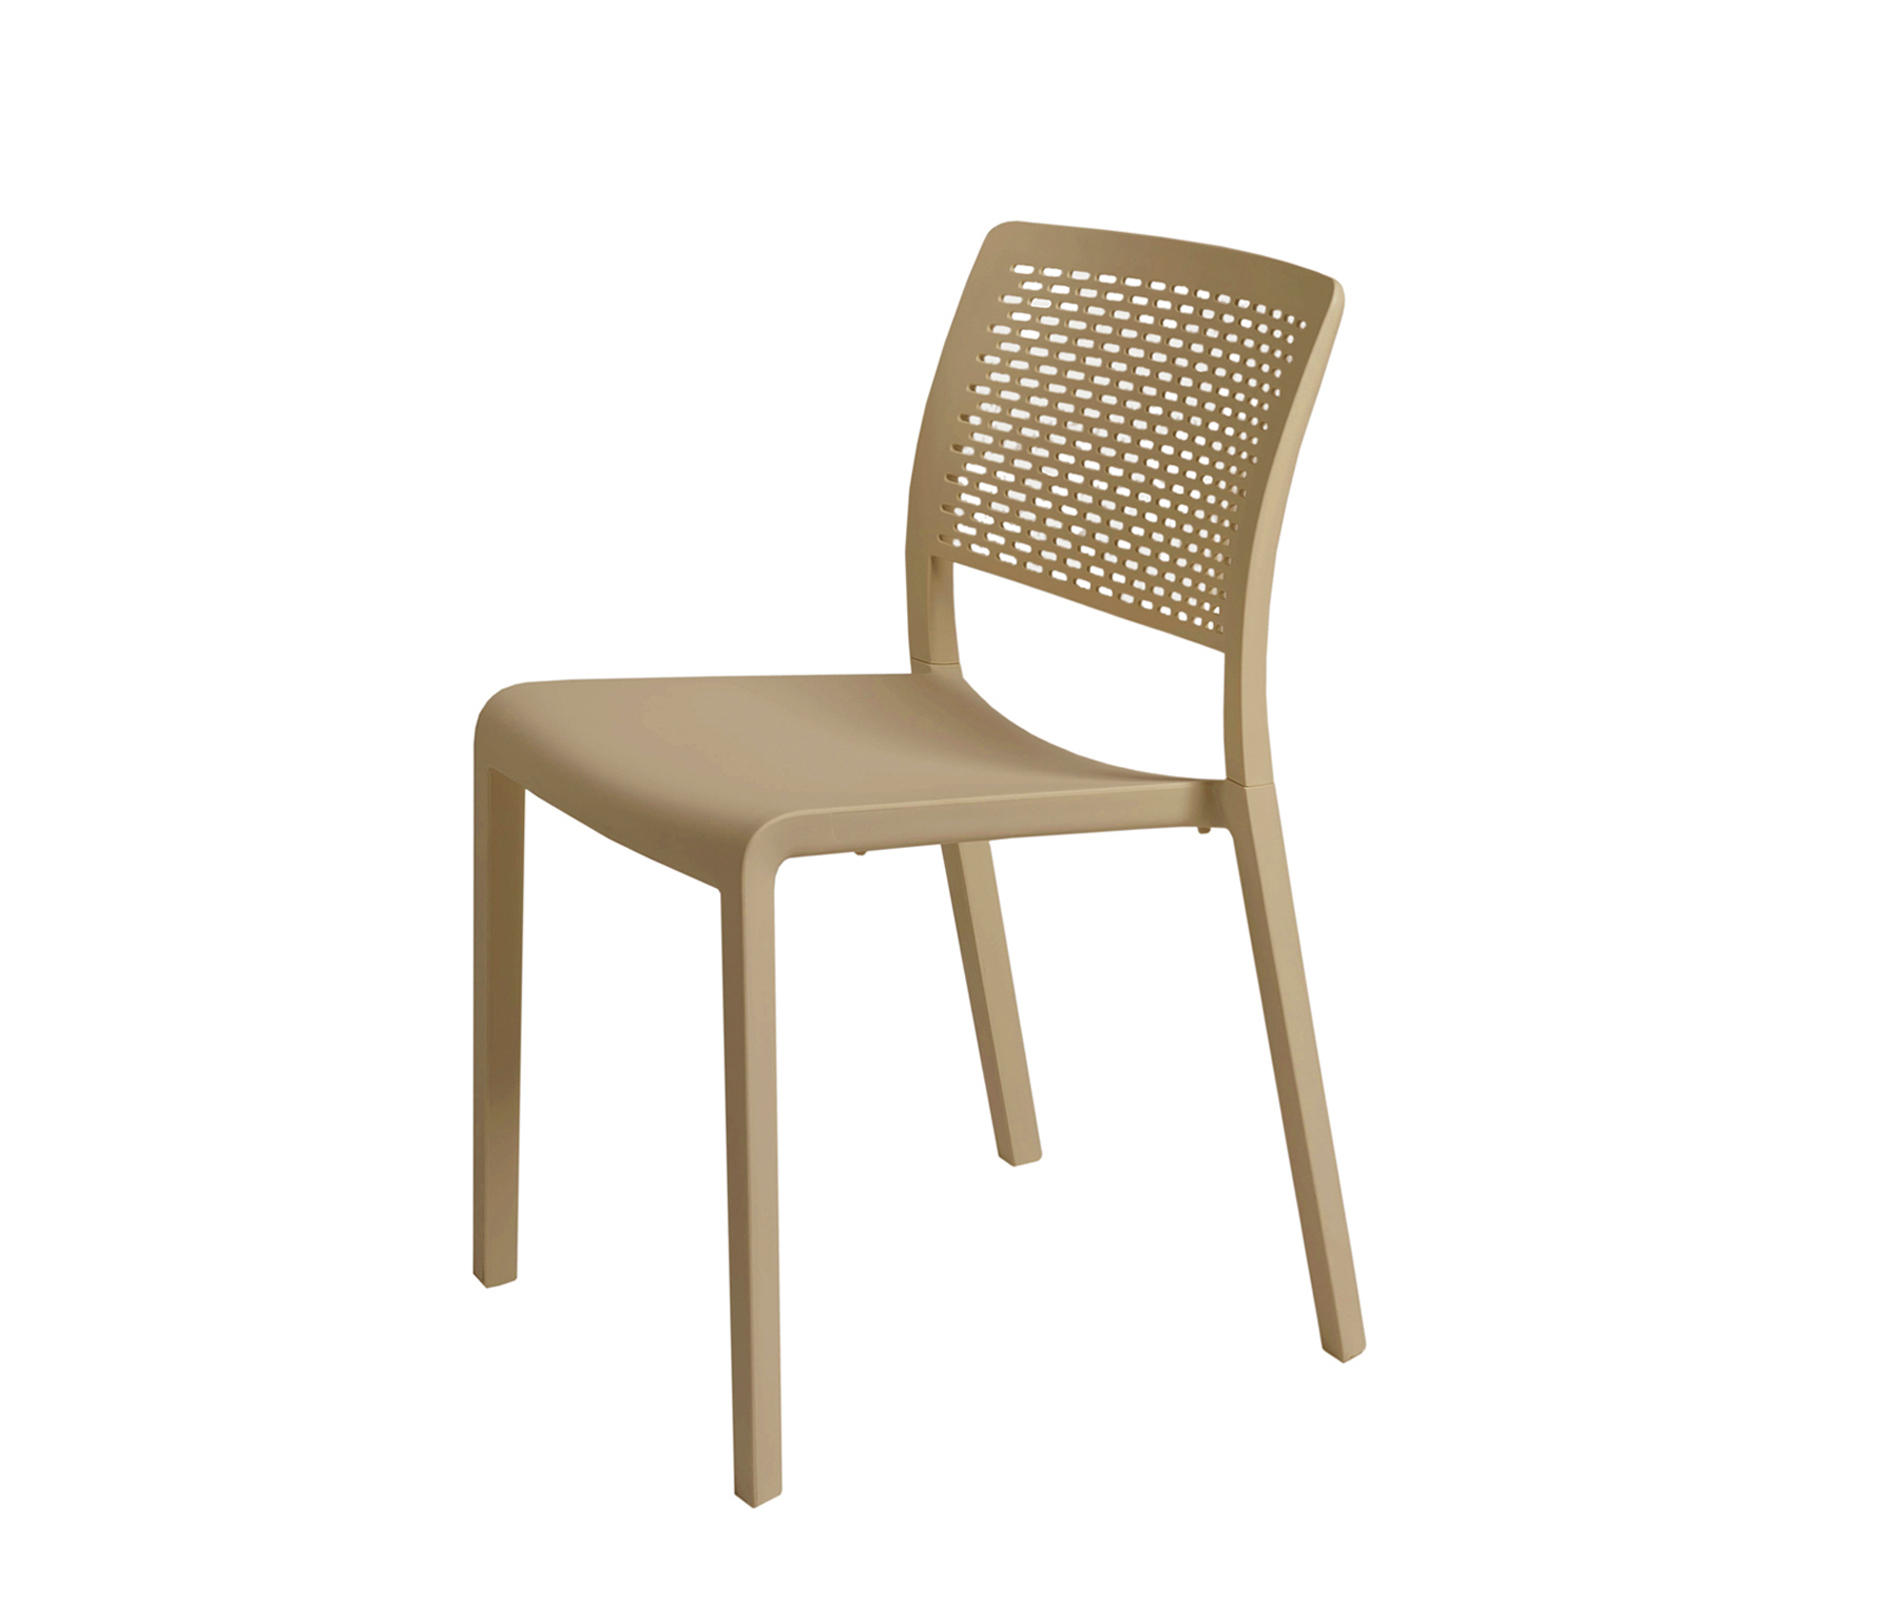 Silla Fiona Resol Trama Chair Chairs From Resol Barcelona Dd Architonic